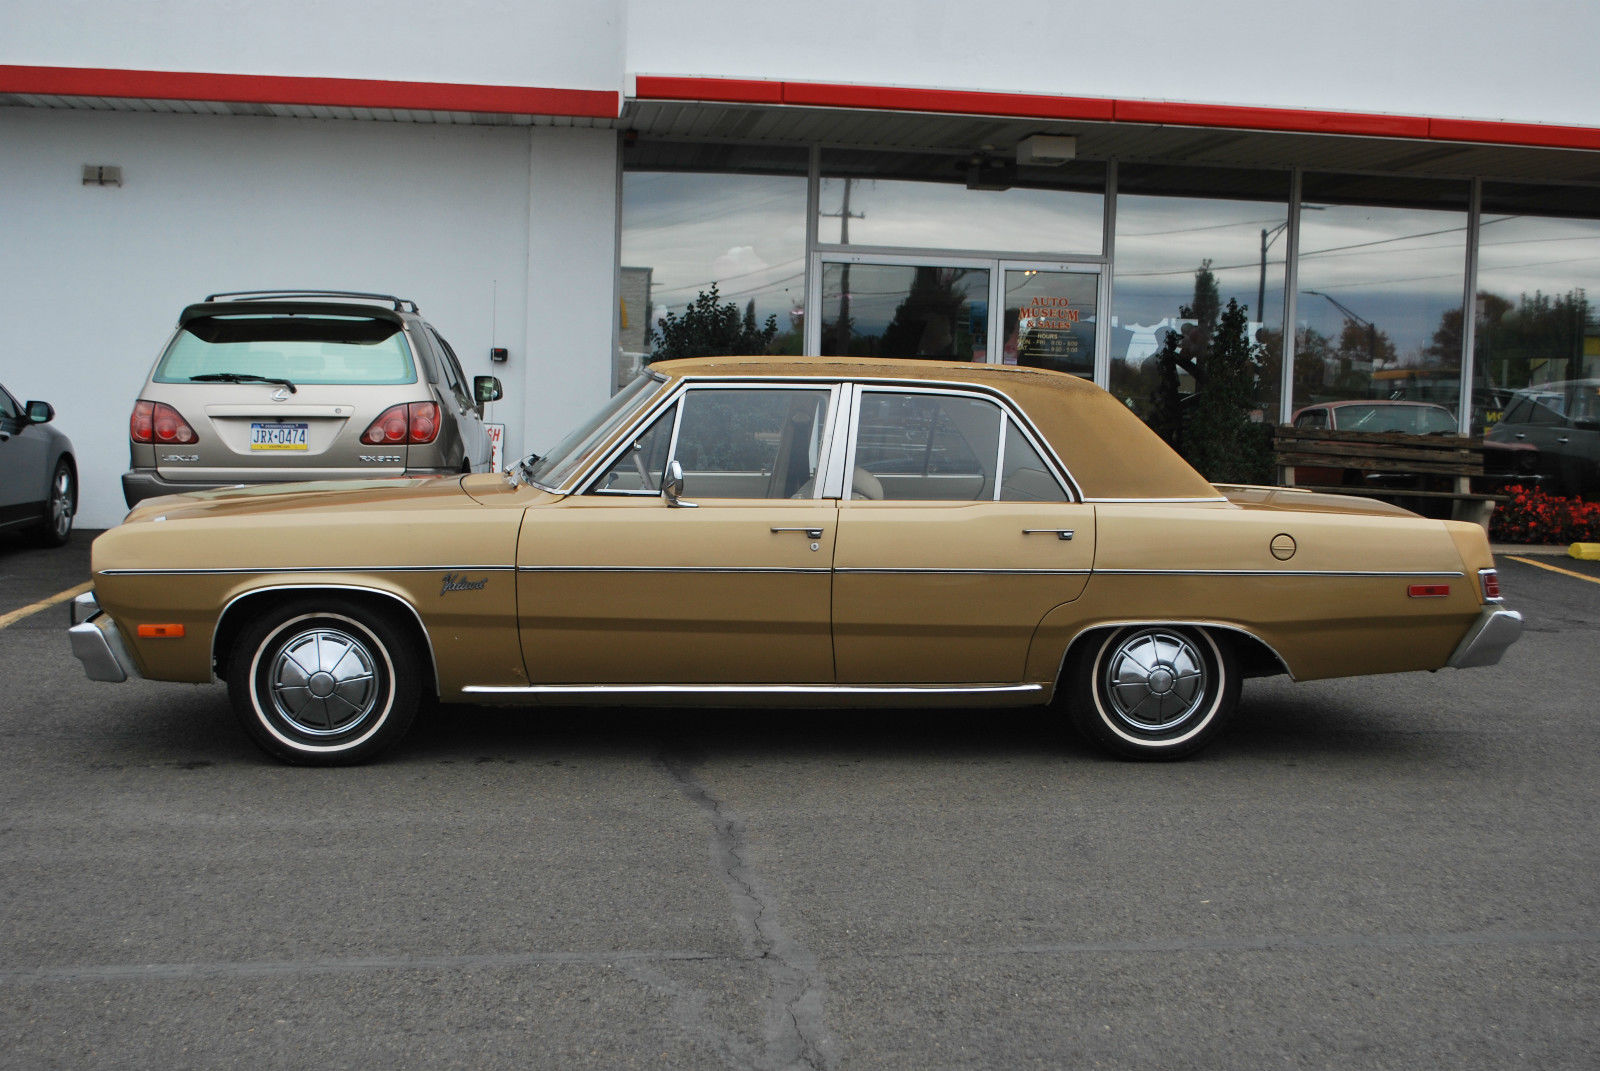 plymouth valiant slant six cool car no reserve original classic plymouth other 1974 for sale. Black Bedroom Furniture Sets. Home Design Ideas